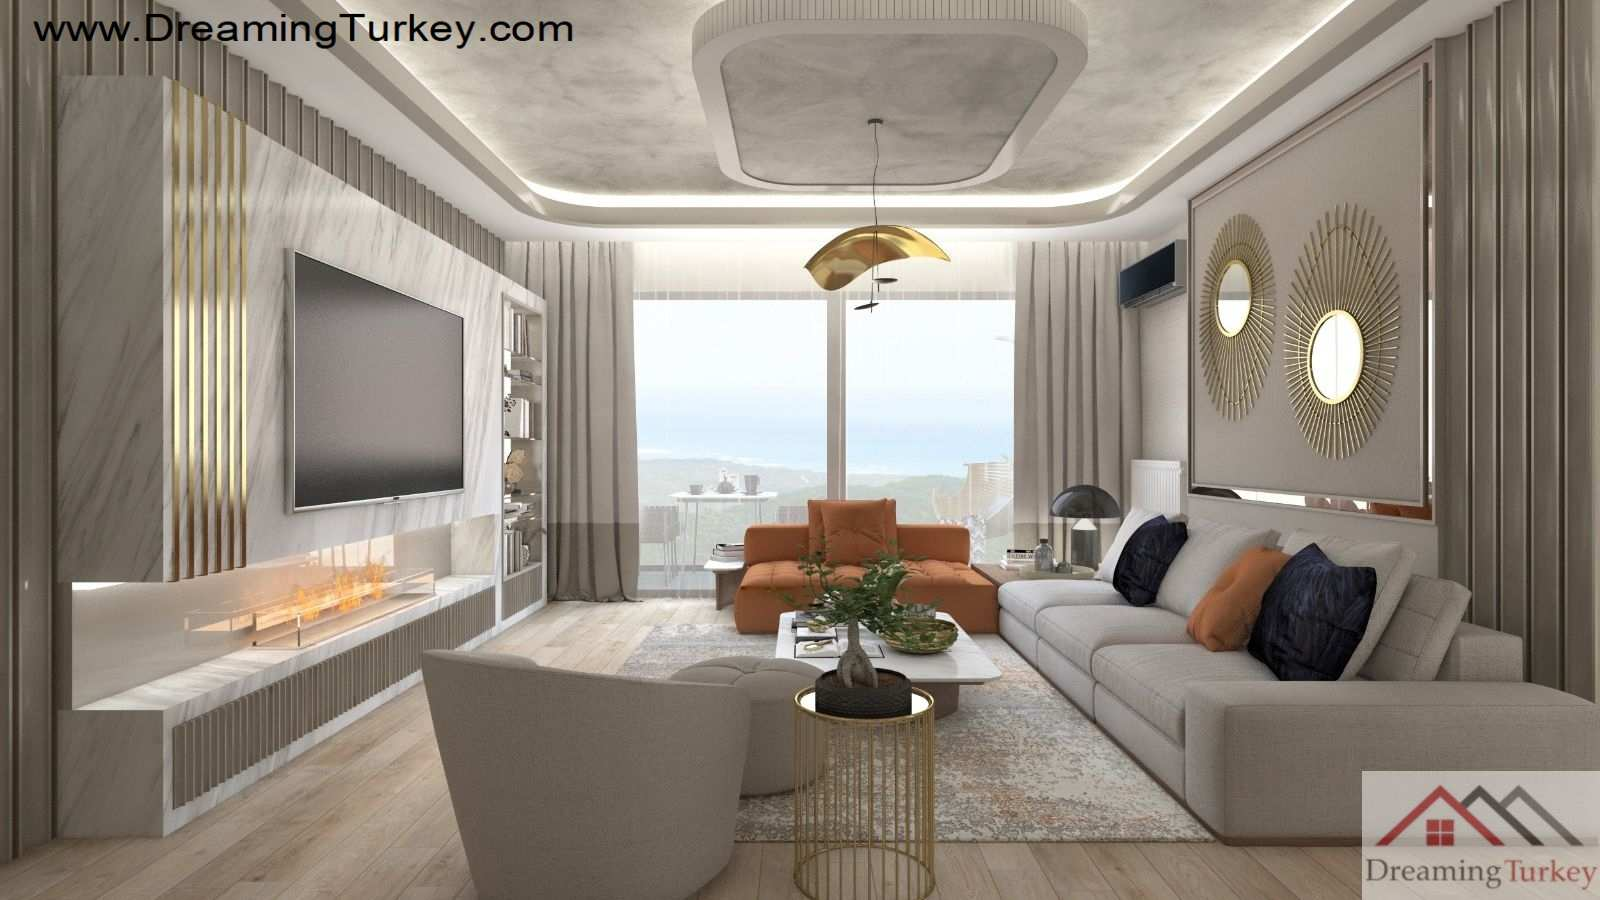 4-Bedroom Duplex with 2 Living Rooms Near the Sea in Istanbul